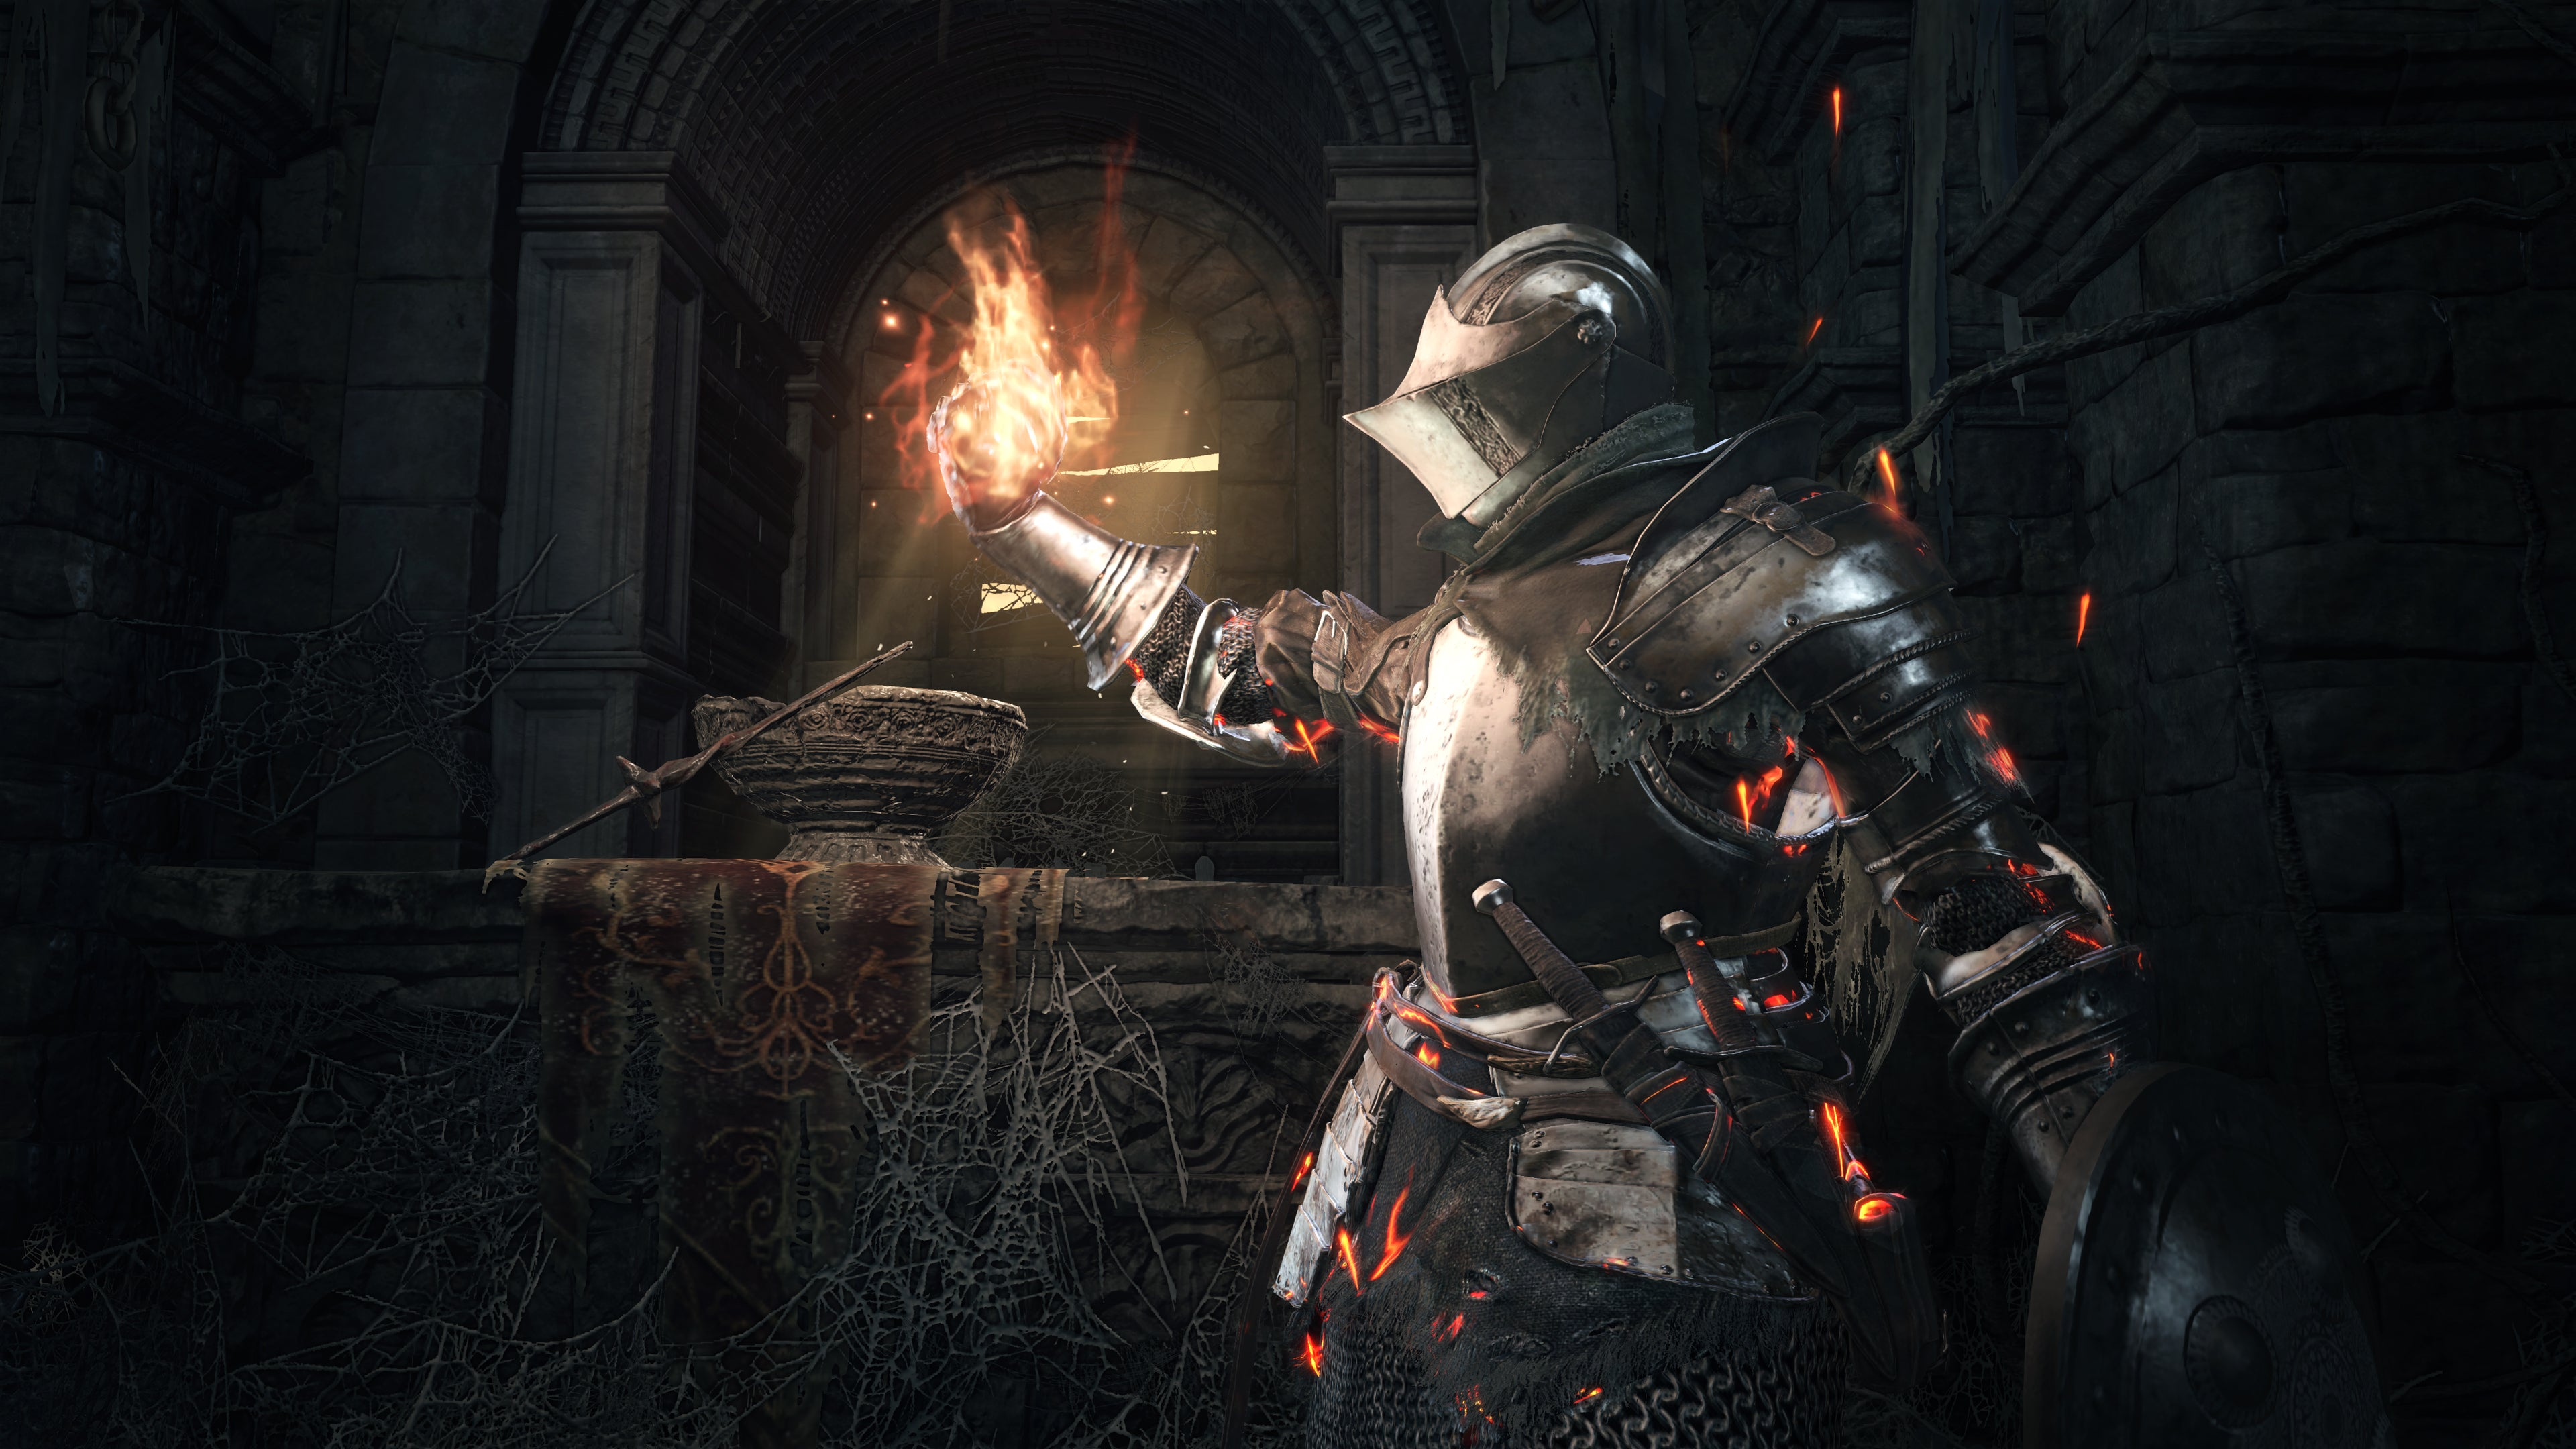 The Nostalgic Moment In Dark Souls 3 That Made Me Go 'Oh, Shit'